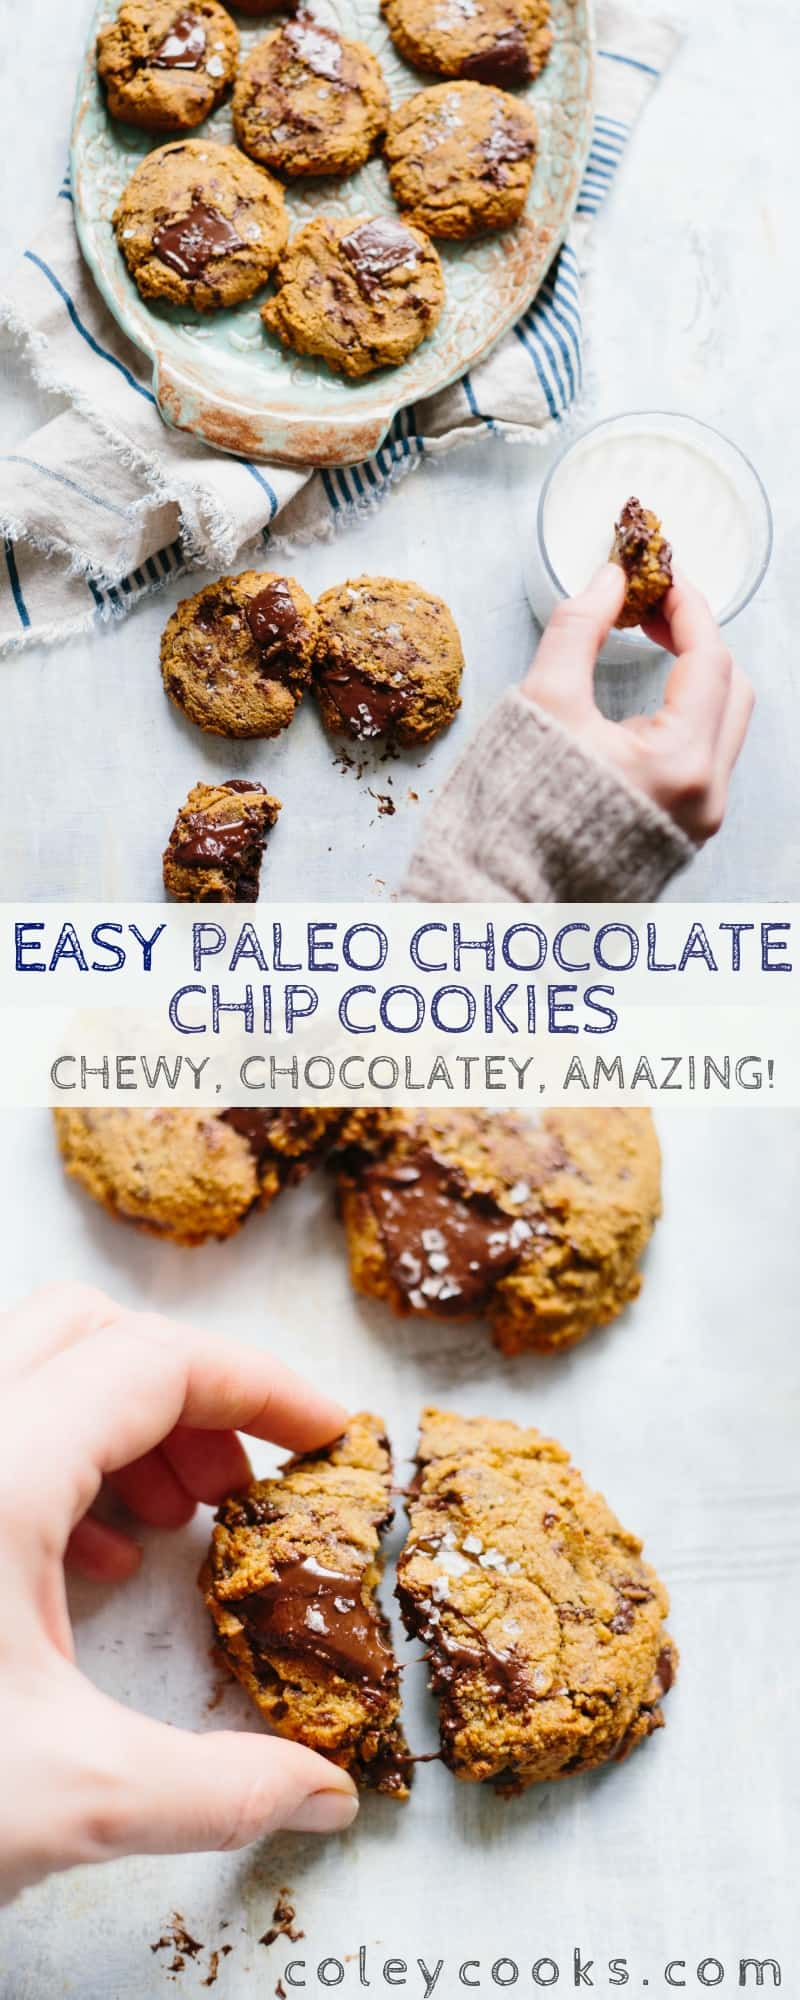 These Paleo Chocolate Chip Cookies are chewy, chocolatey and crazy addictive! This easy recipe is gluten/grain free, dairy free, refined sugar free and shockingly delicious. #easy #chocolate #cookie #glutenfree #recipe #paleo #dairyfree   ColeyCooks.com